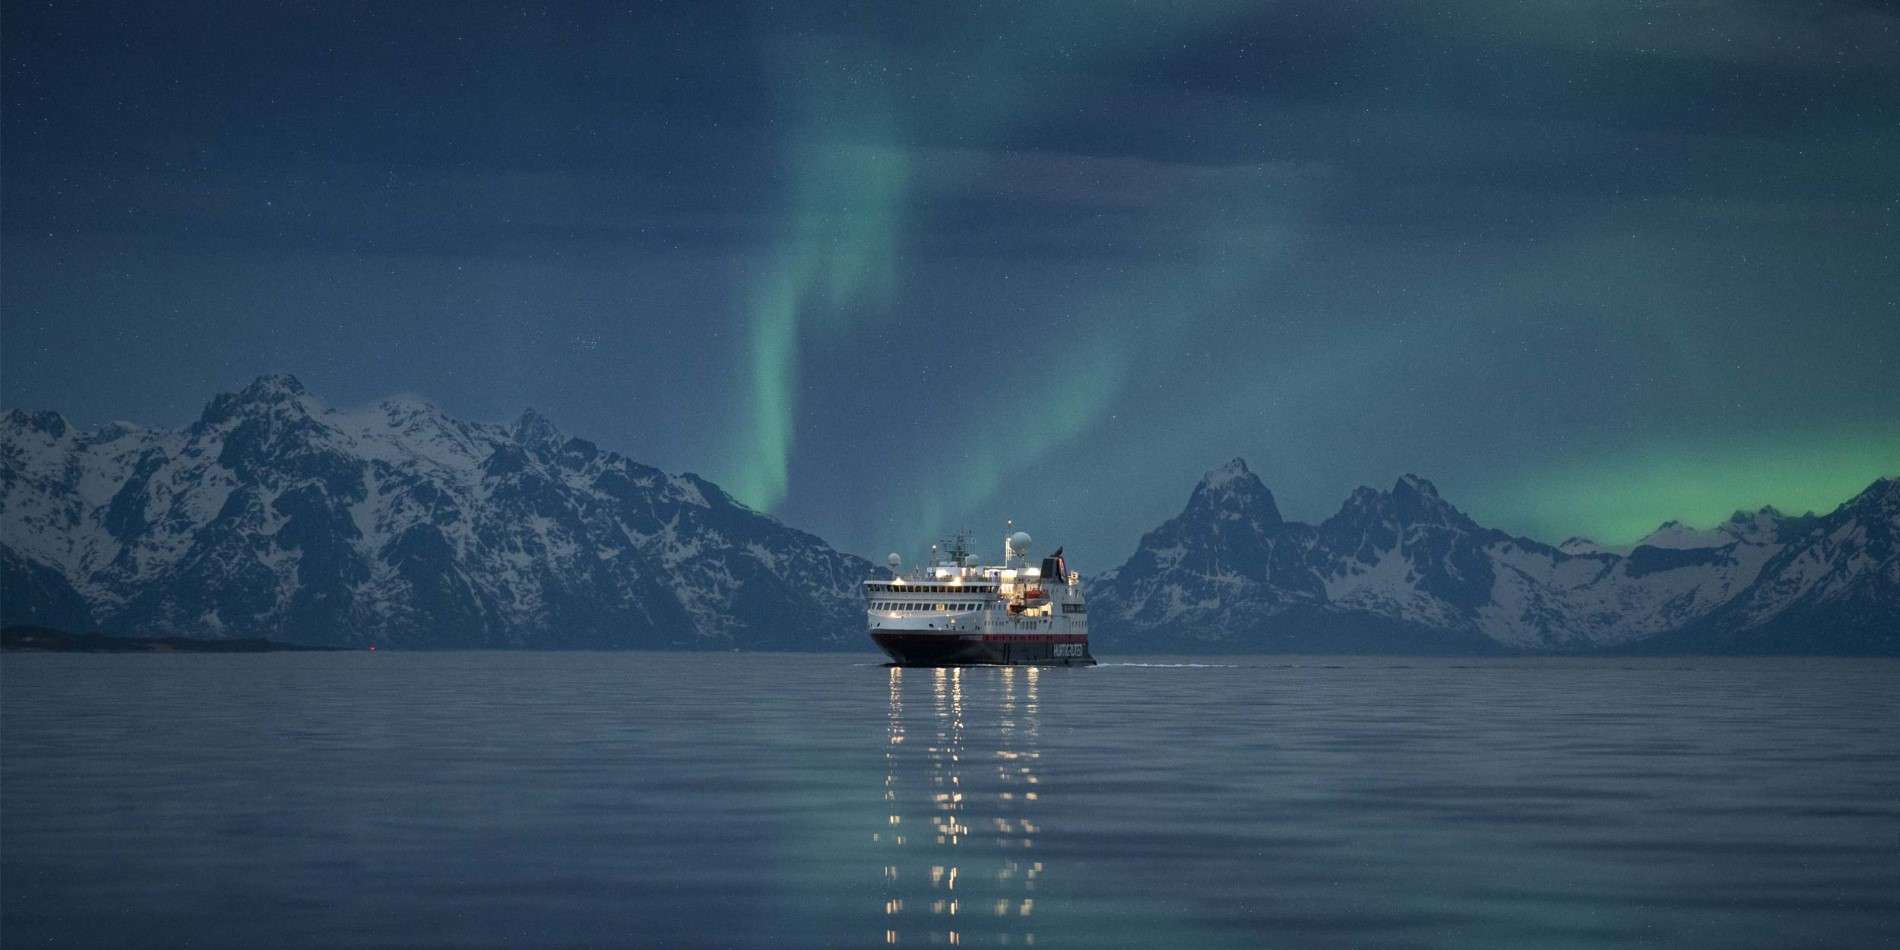 MS Spitsbergen under the Northern Lights in Norway